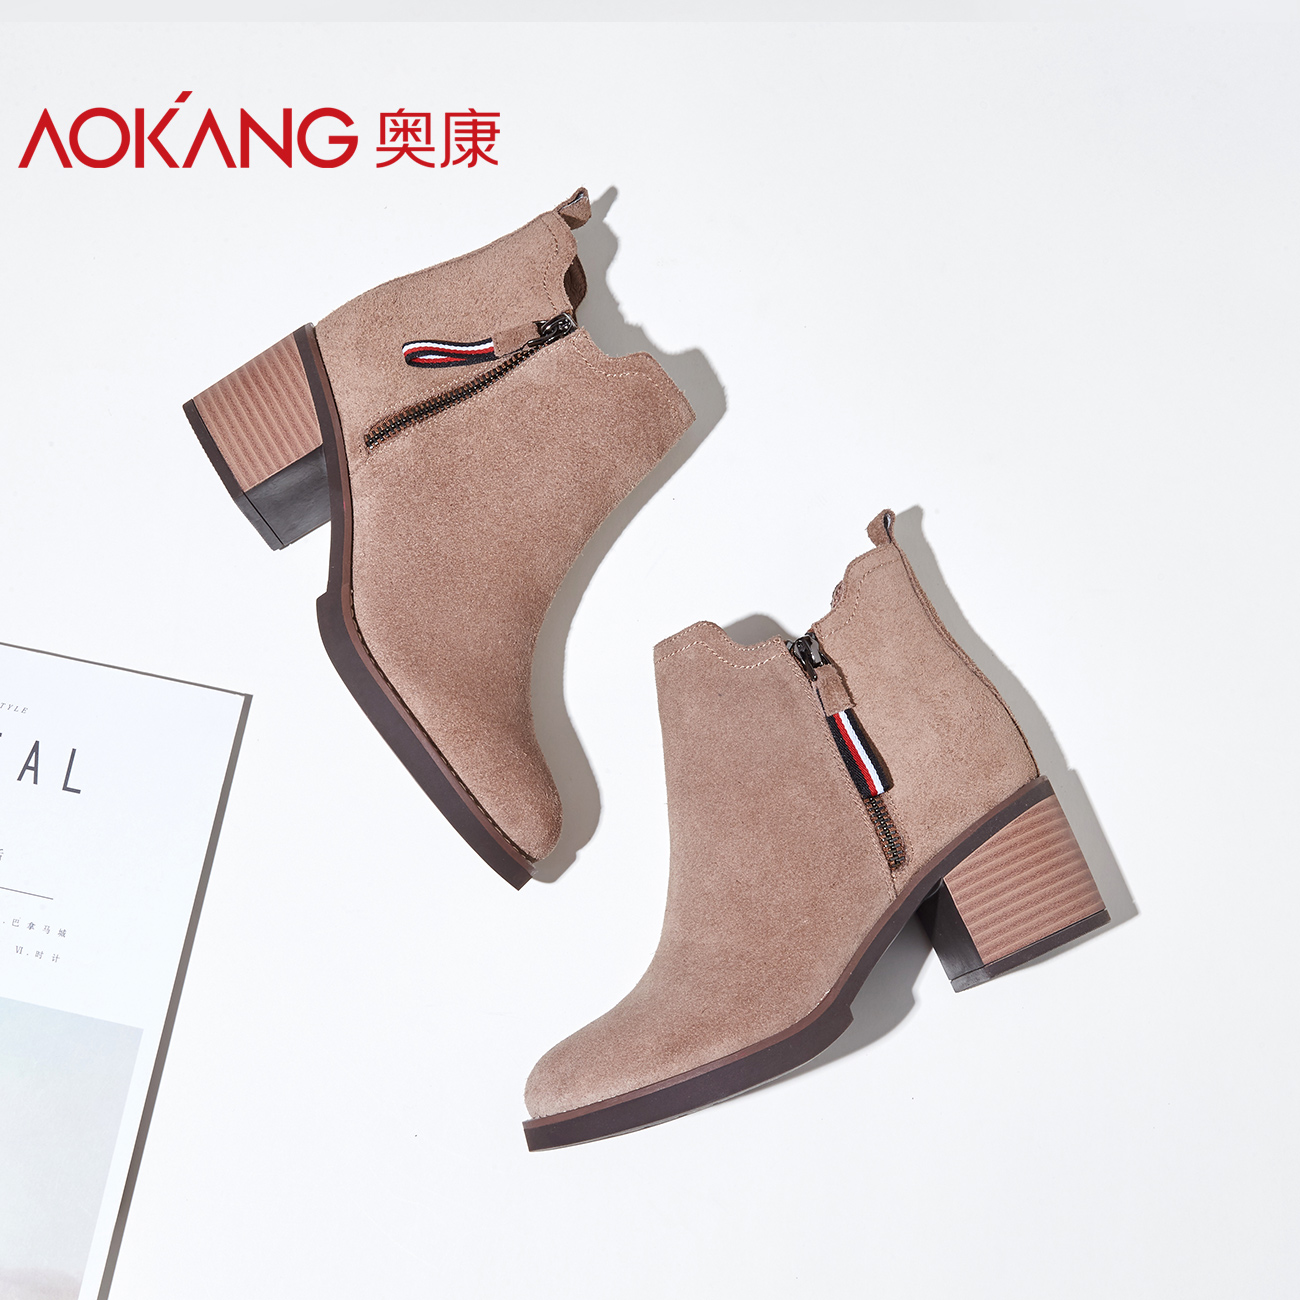 Aokang women's shoes autumn and winter new leather suede boots women British versatile matte leather fashion short tube women's boots